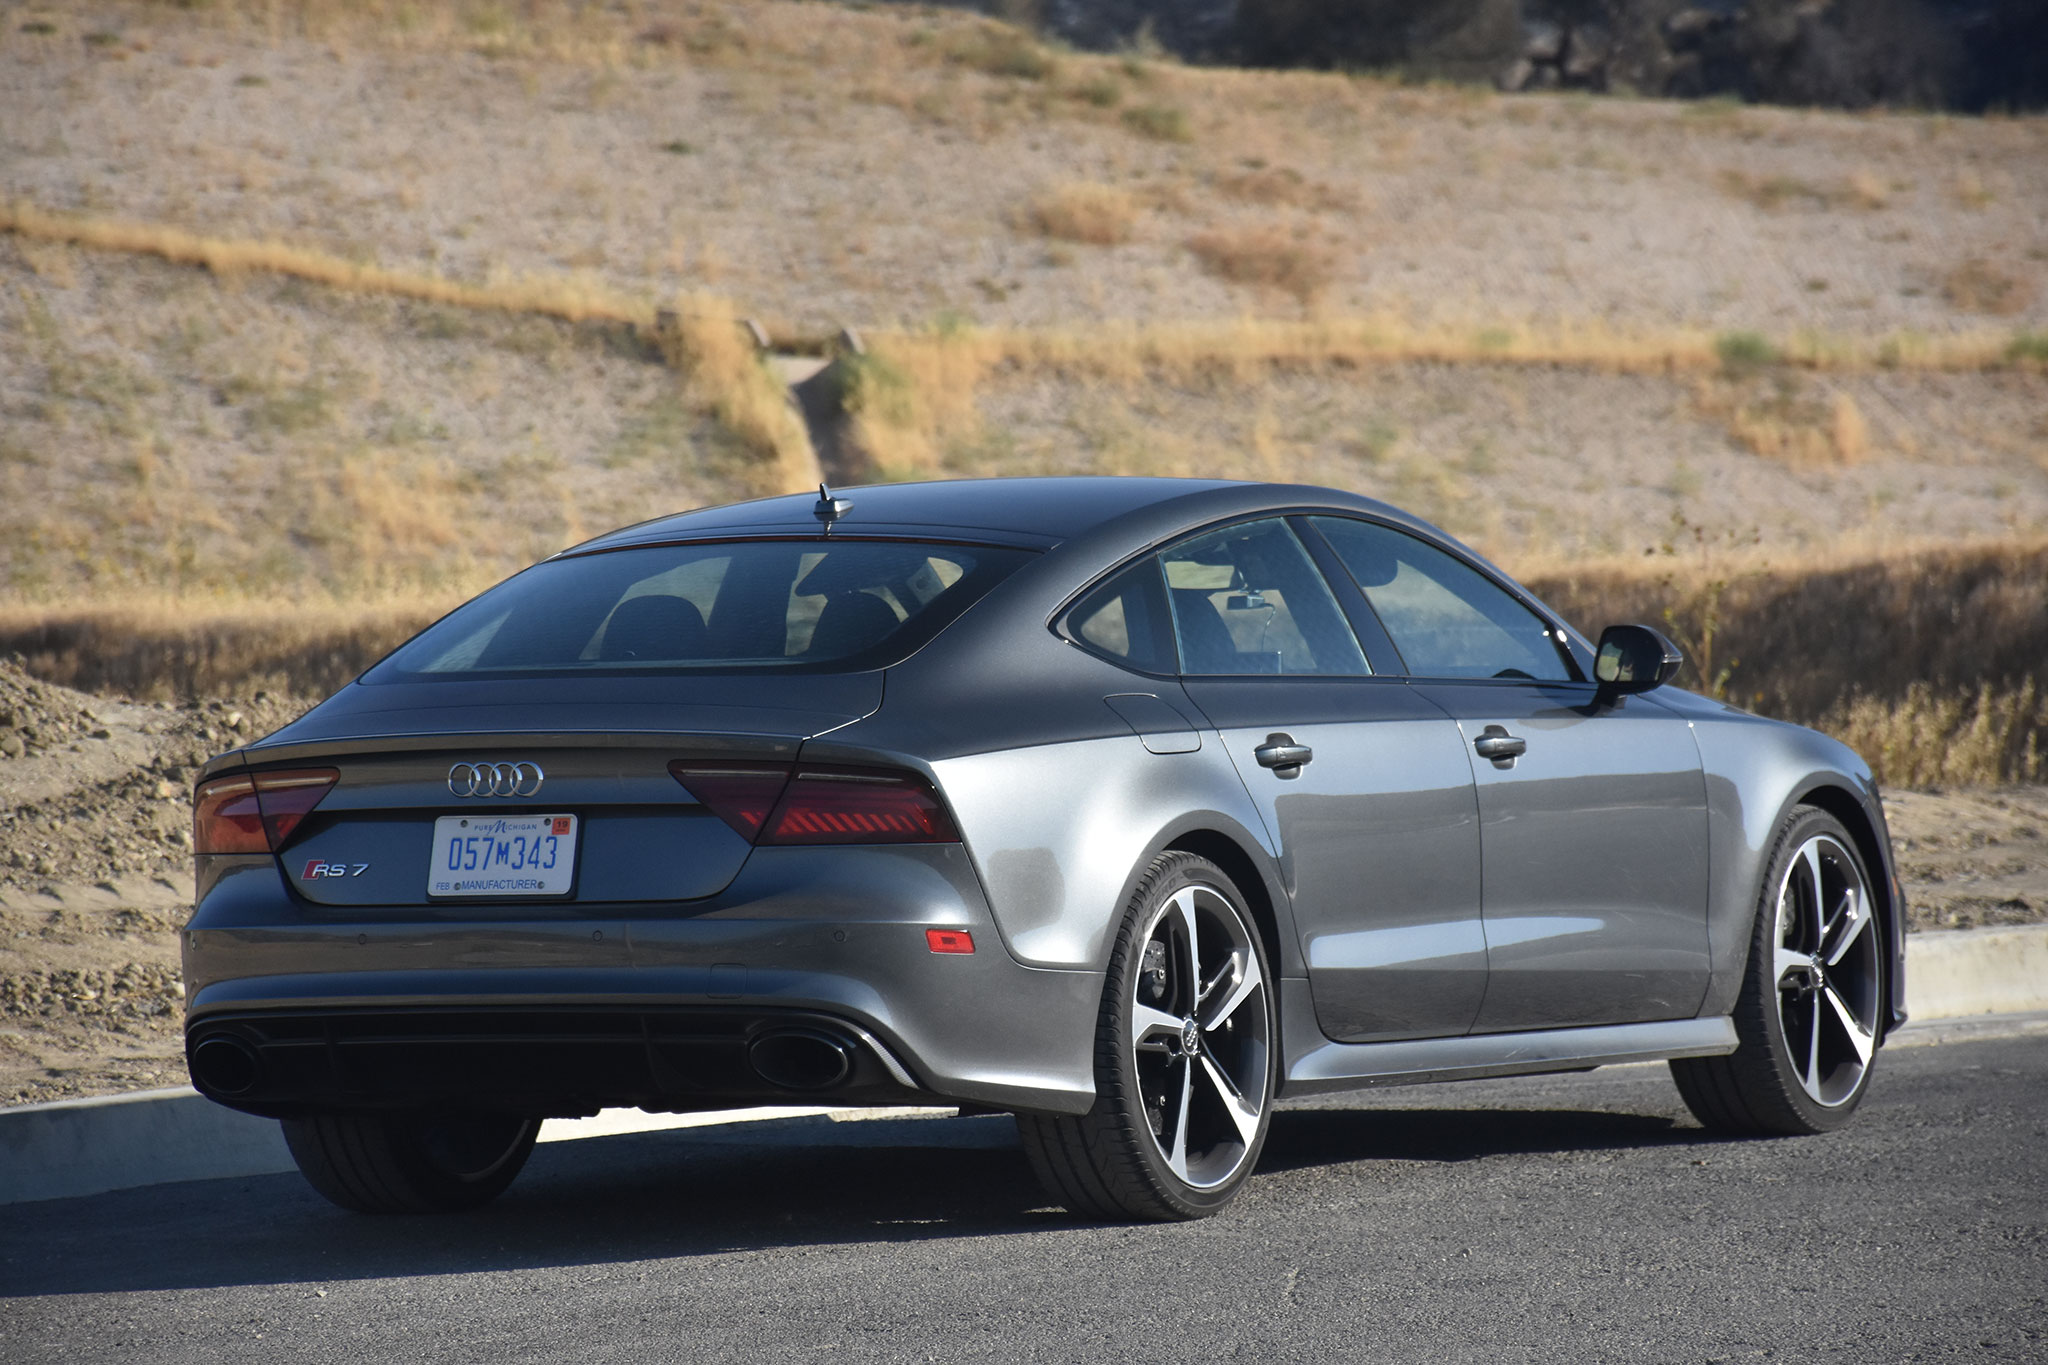 Audi Rs7 0-60 >> A Dangerous Situation in a 2016 Audi RS7 Performance